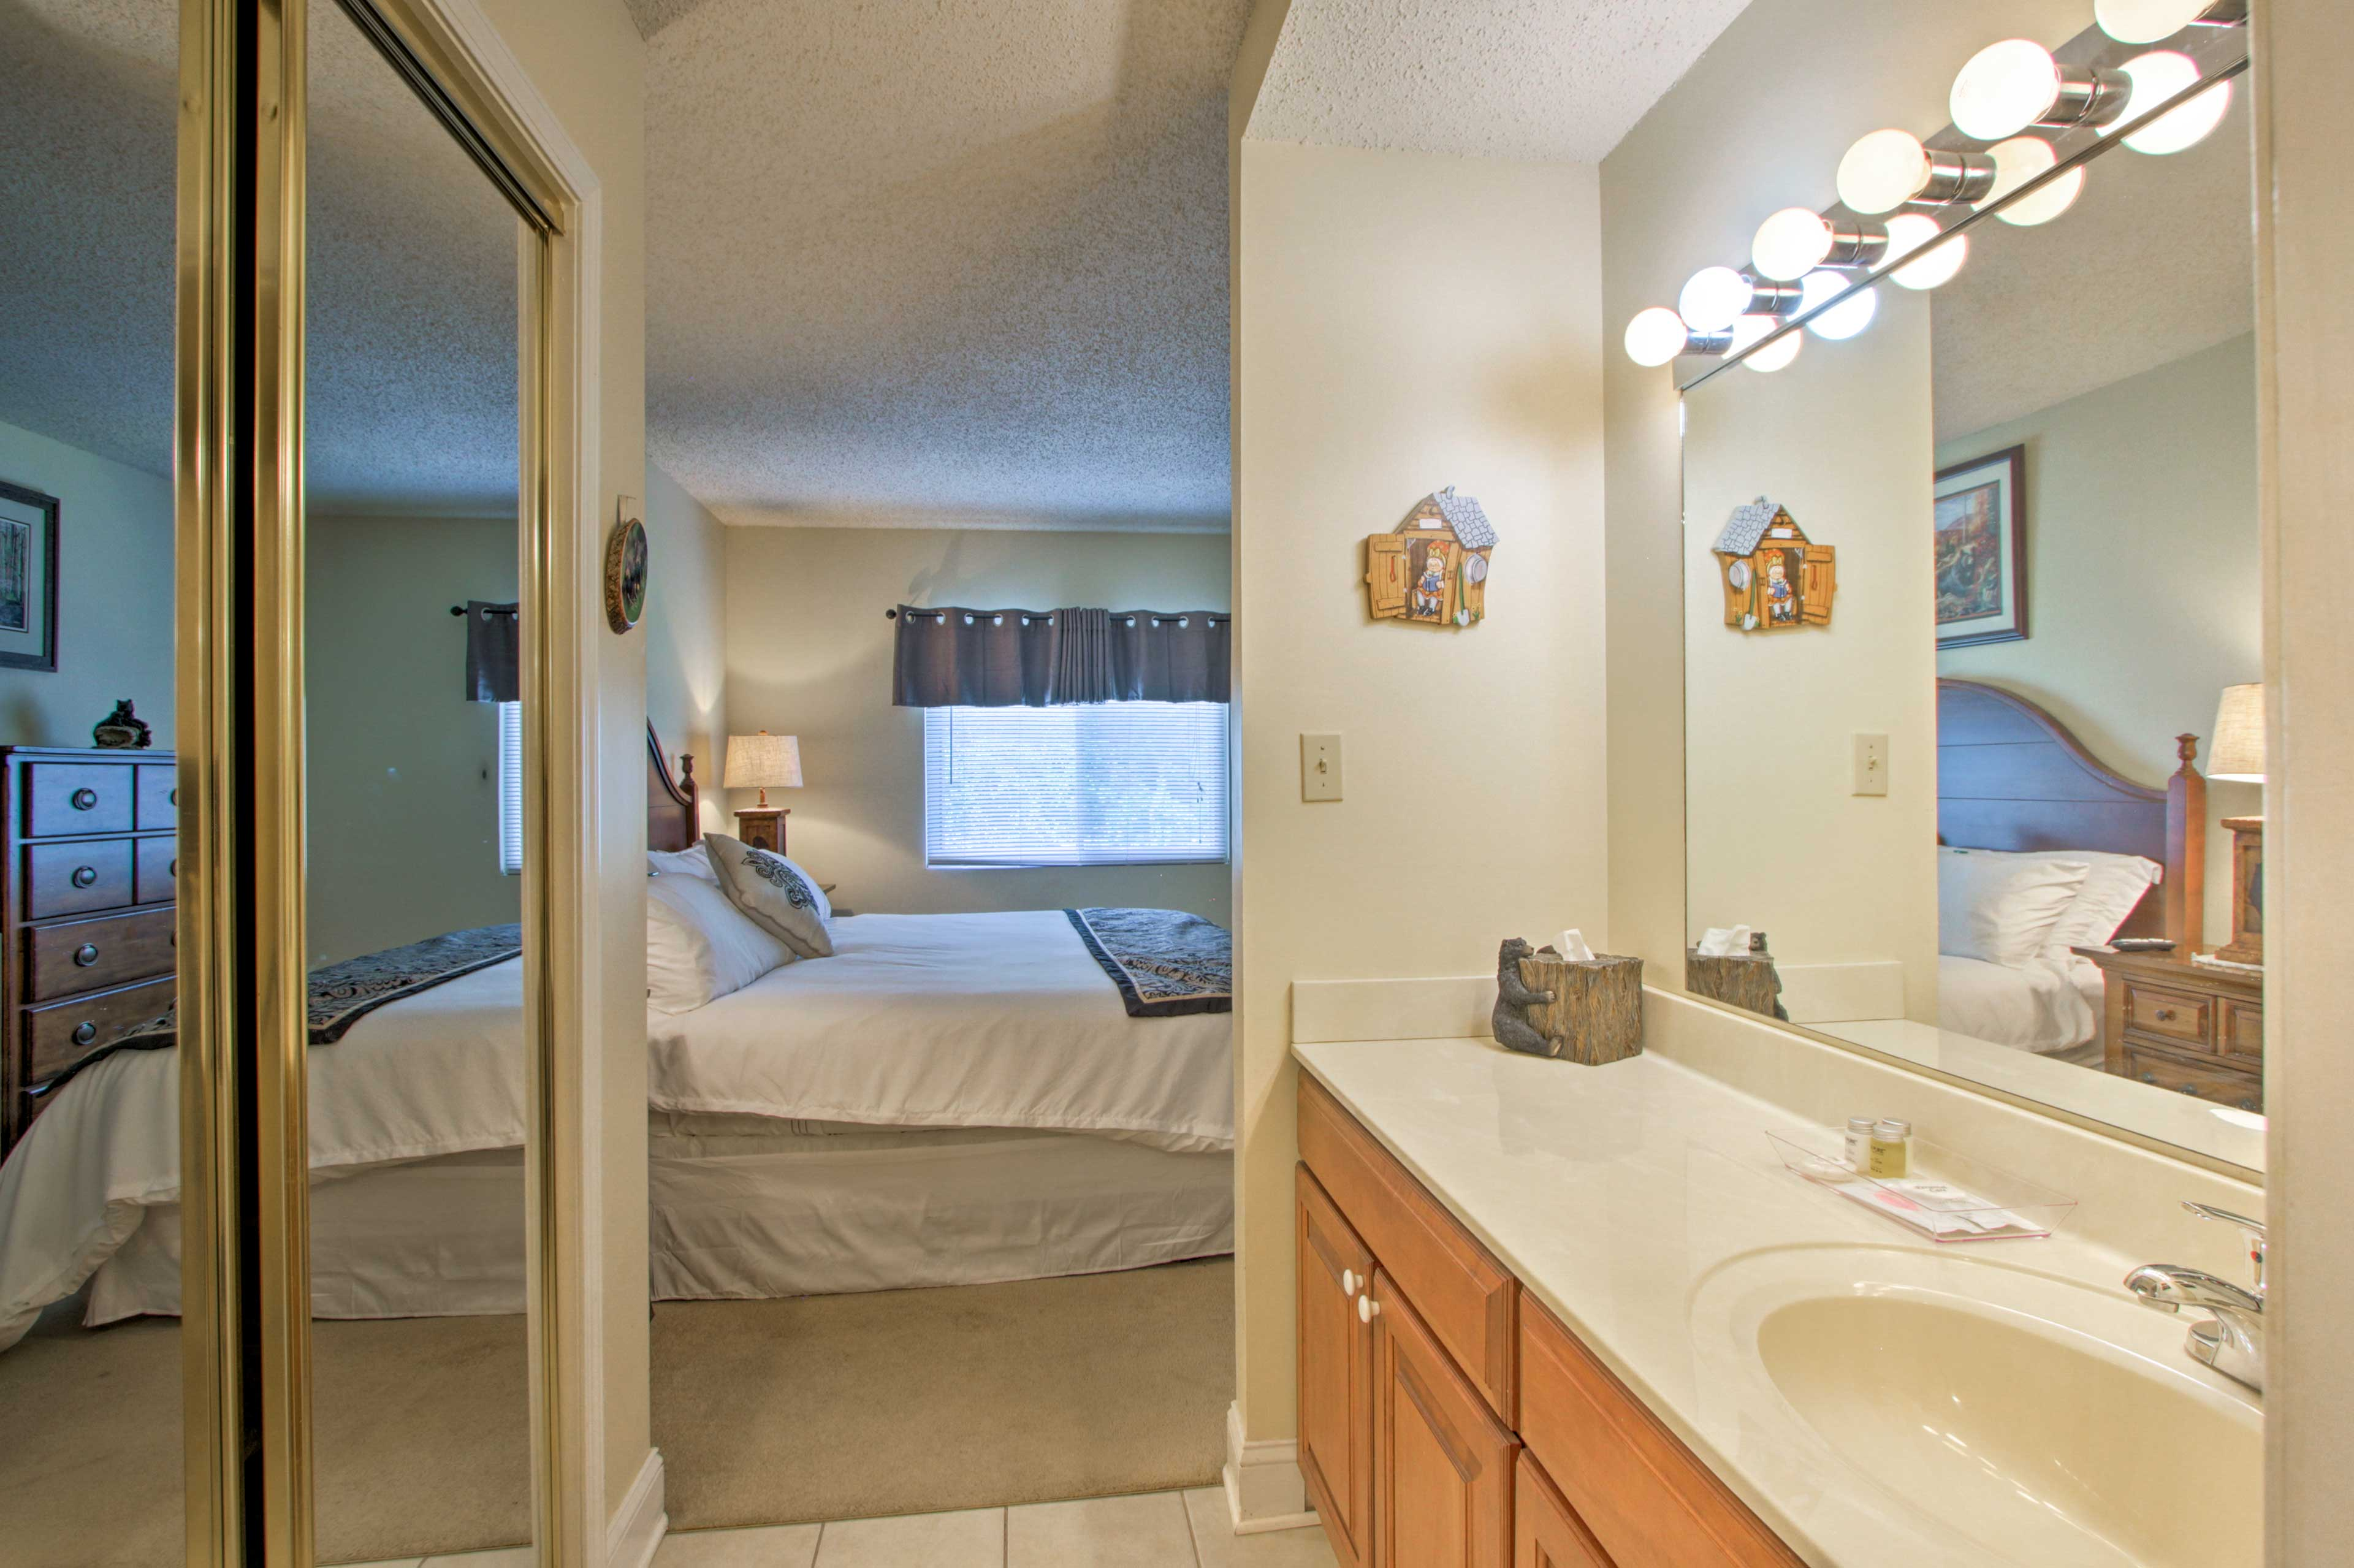 Check out your outfit for the day in these full-length mirror closet doors!